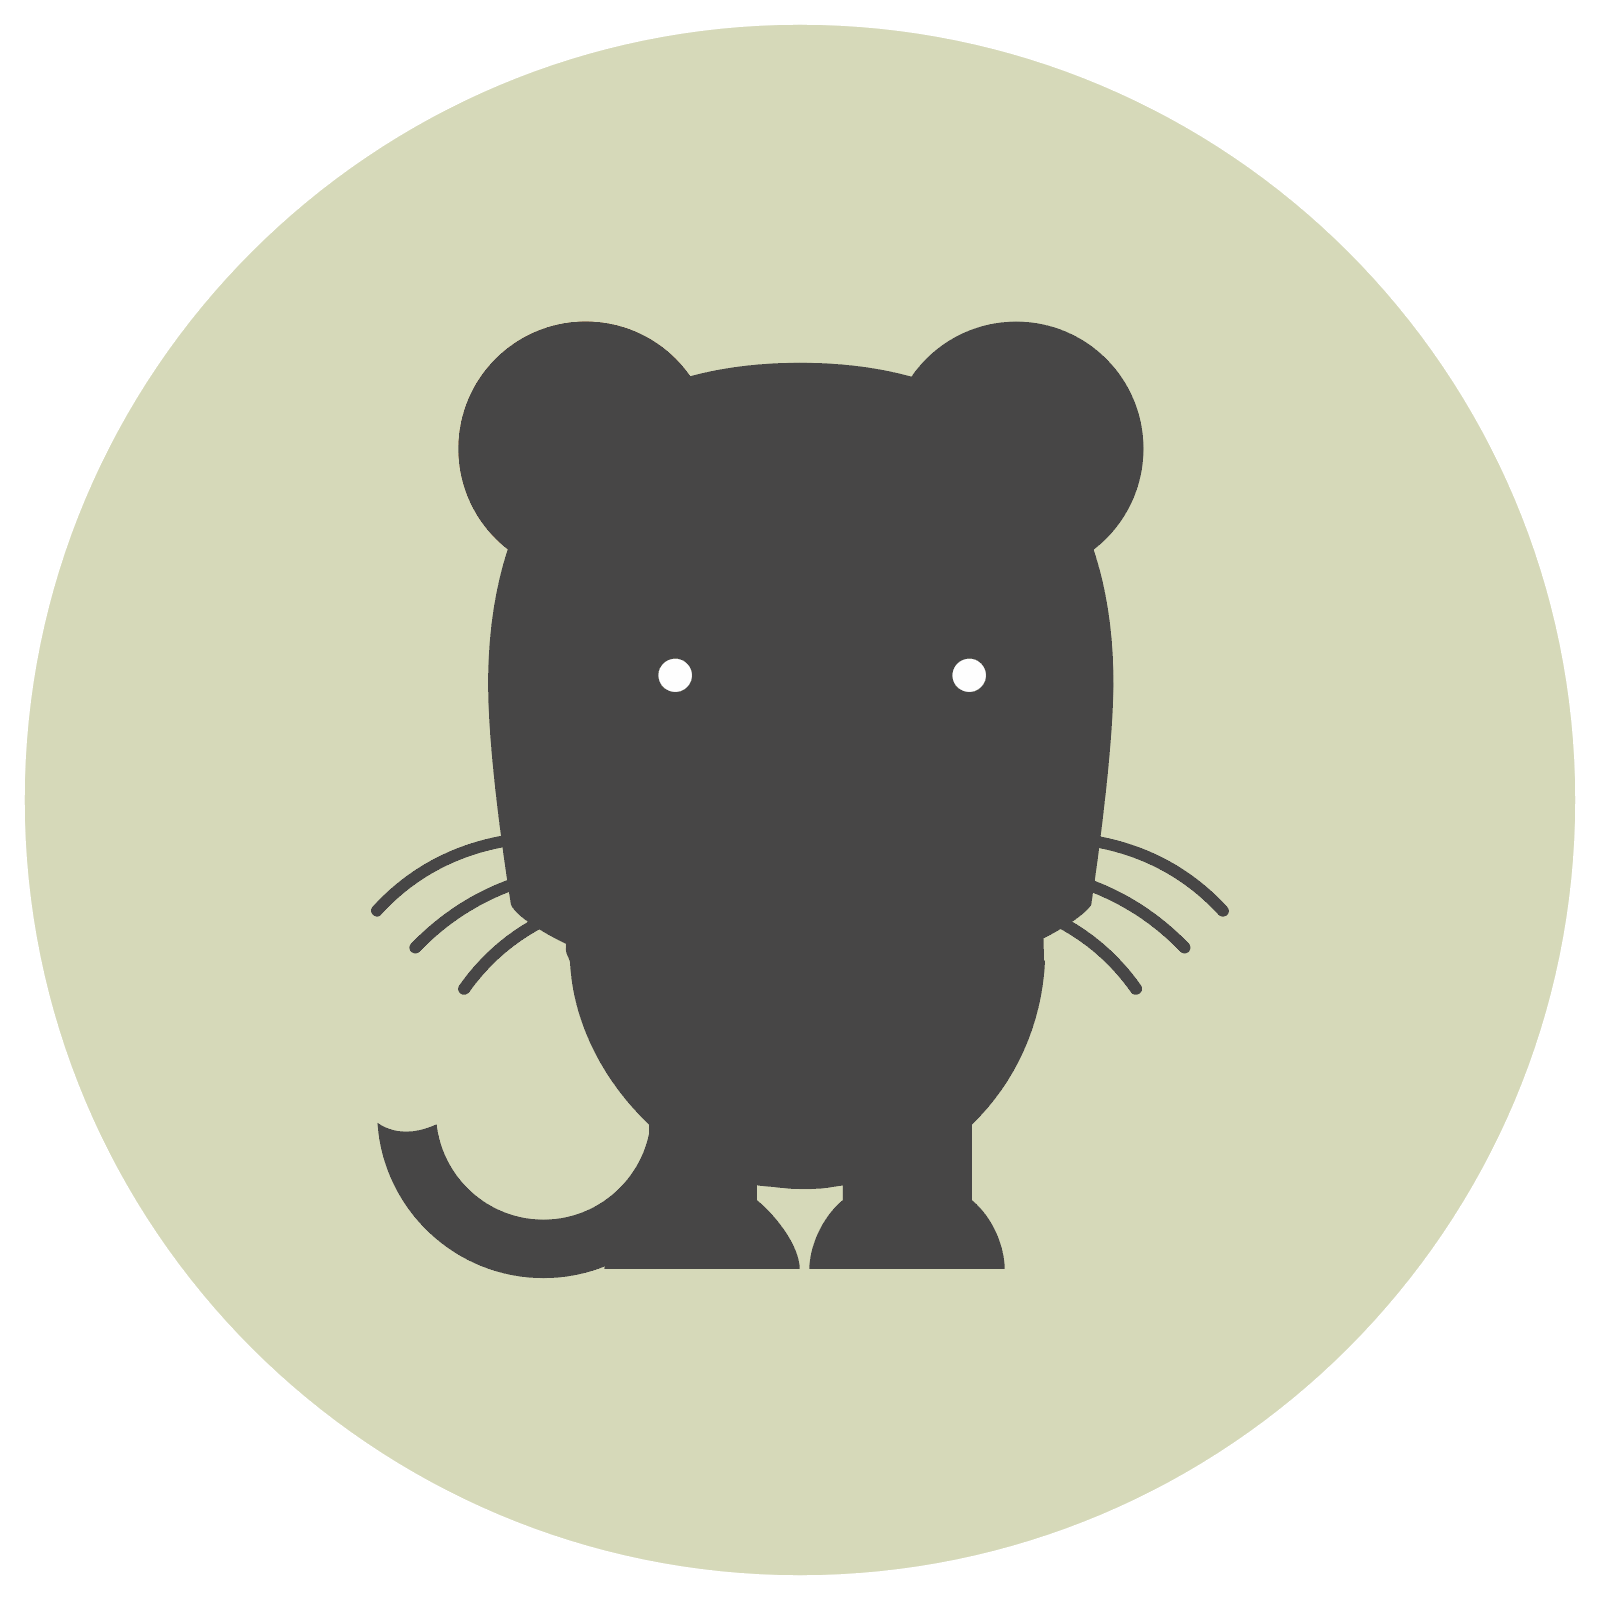 Jaguar transparent vector. Black icon free download